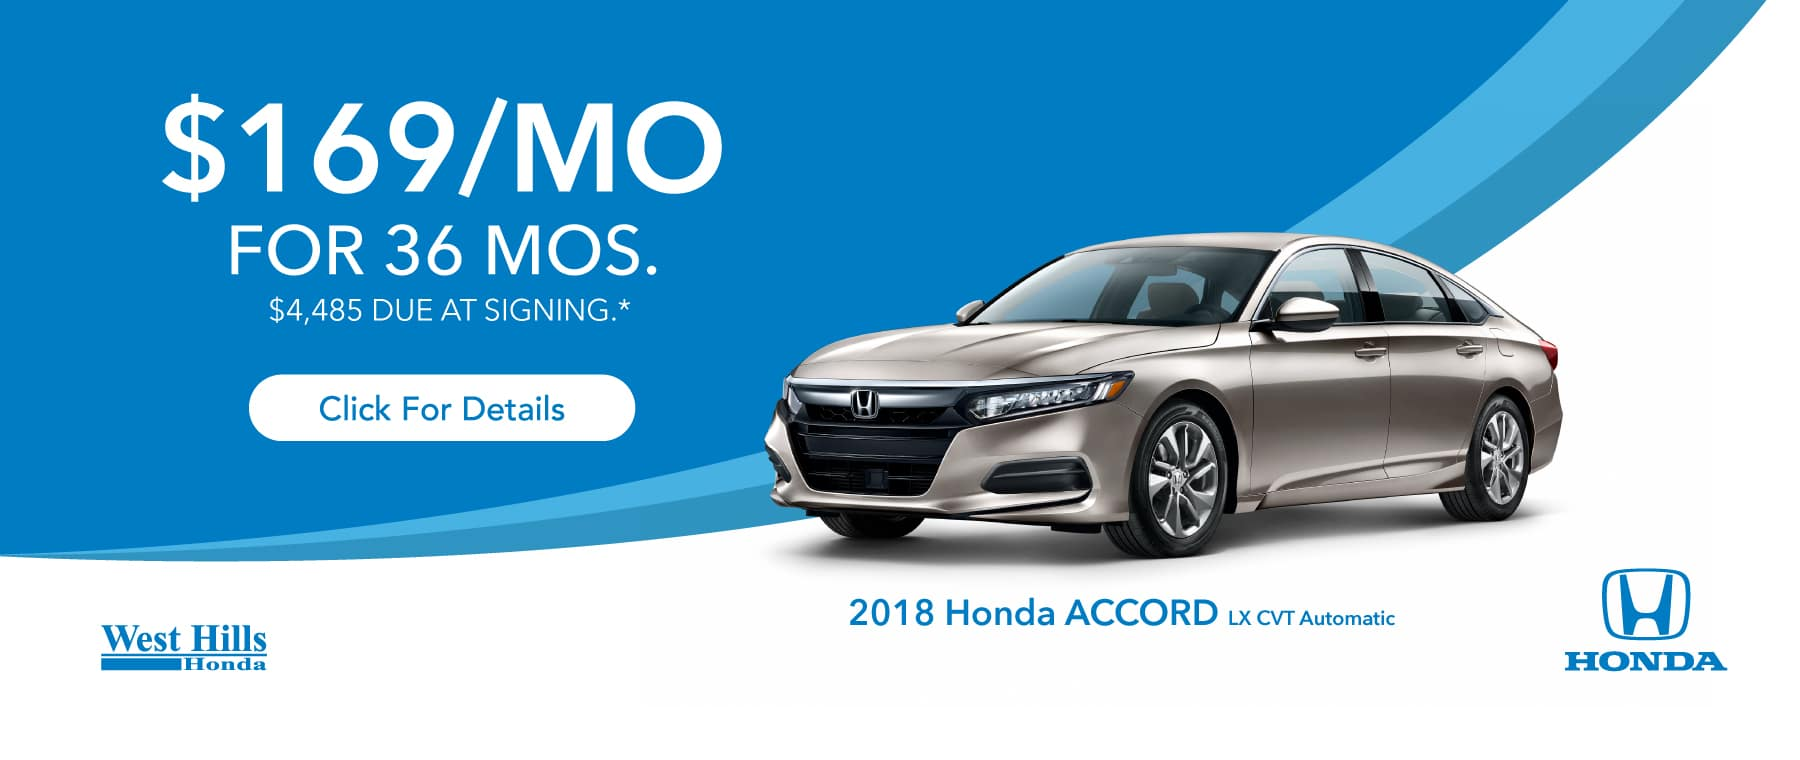 2018 Honda Accord LX CVT Automatic $169/mo. for 36 mos. $4,485 due at signing*    *$169 per mo. for 36 months. Lease with $4,485 due at signing; includes a $595 acquisition fee on 2018 Honda Accord LX CVT Automatic. Valid on VIN: 1HGCV1F17JA163729. MSRP is $24,460. No Security deposit required. Subject to credit approval. 36 monthly payments required. Not all lessees will qualify for lowest payment through participating lender. Residency restrictions apply. Lessee responsible for maintenance, excessive wear/tear and mileage over 12,000 miles per year at $0.15/mile. Option to purchase at lease end. Excludes state and local taxes, tags, registration and title, insurance and dealer charges. A negotiable dealer documentary service fee of up to $150 may be added to the sale price or capitalized cost. Offer expires 1/31/2019.